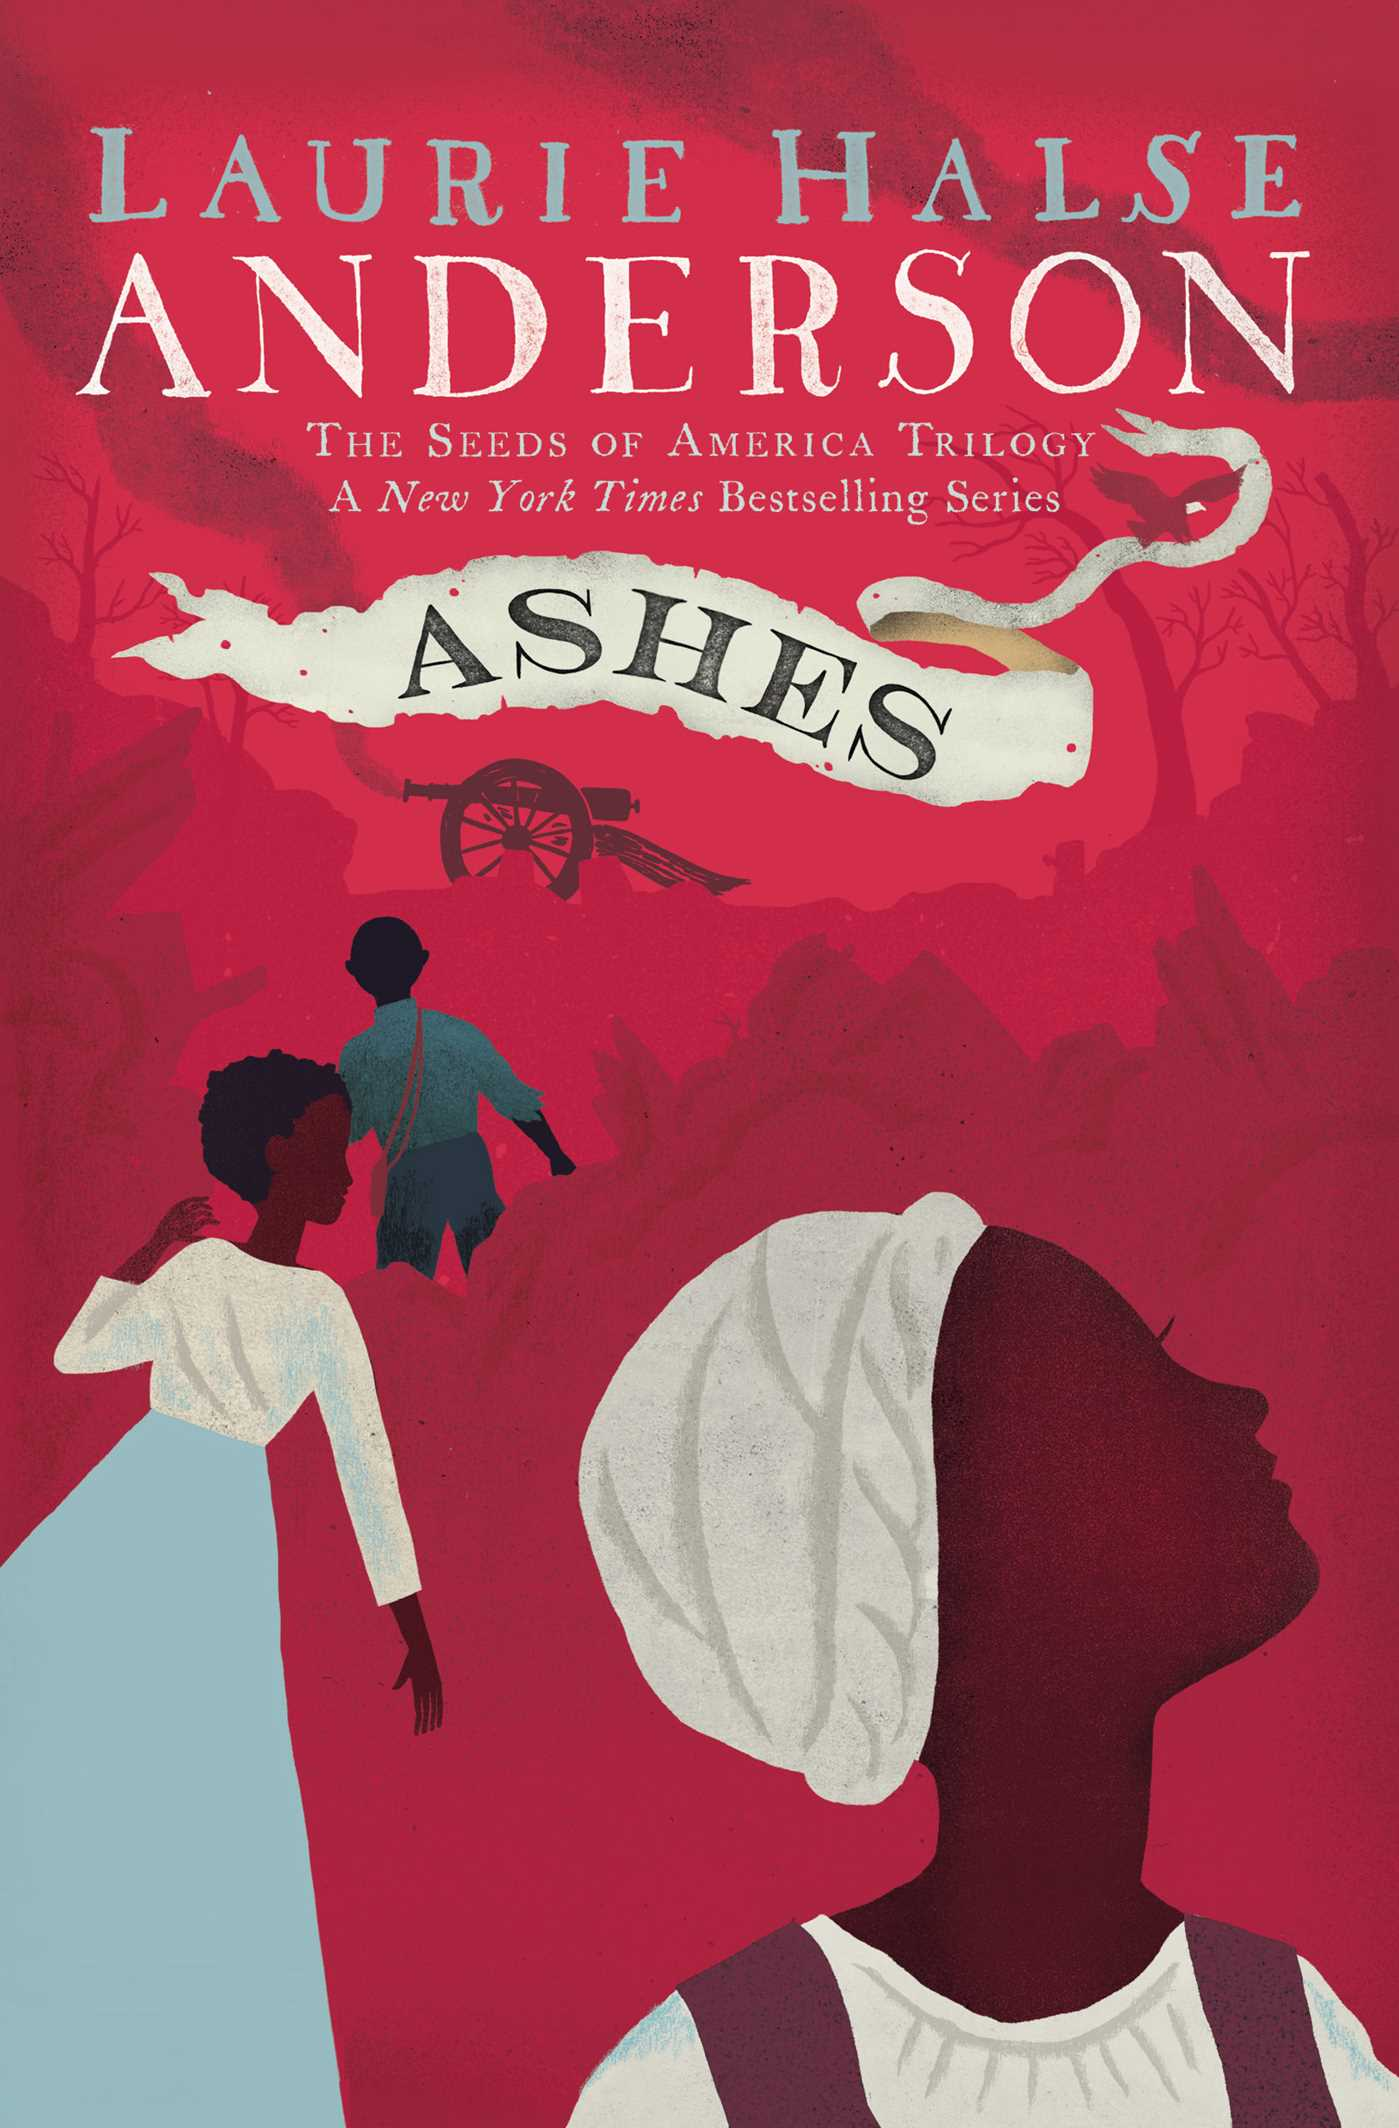 Ashes: The Seeds of America Trilogy (Laurie Halse Anderson; Atheneum/Caitlyn Dlouhy Books)